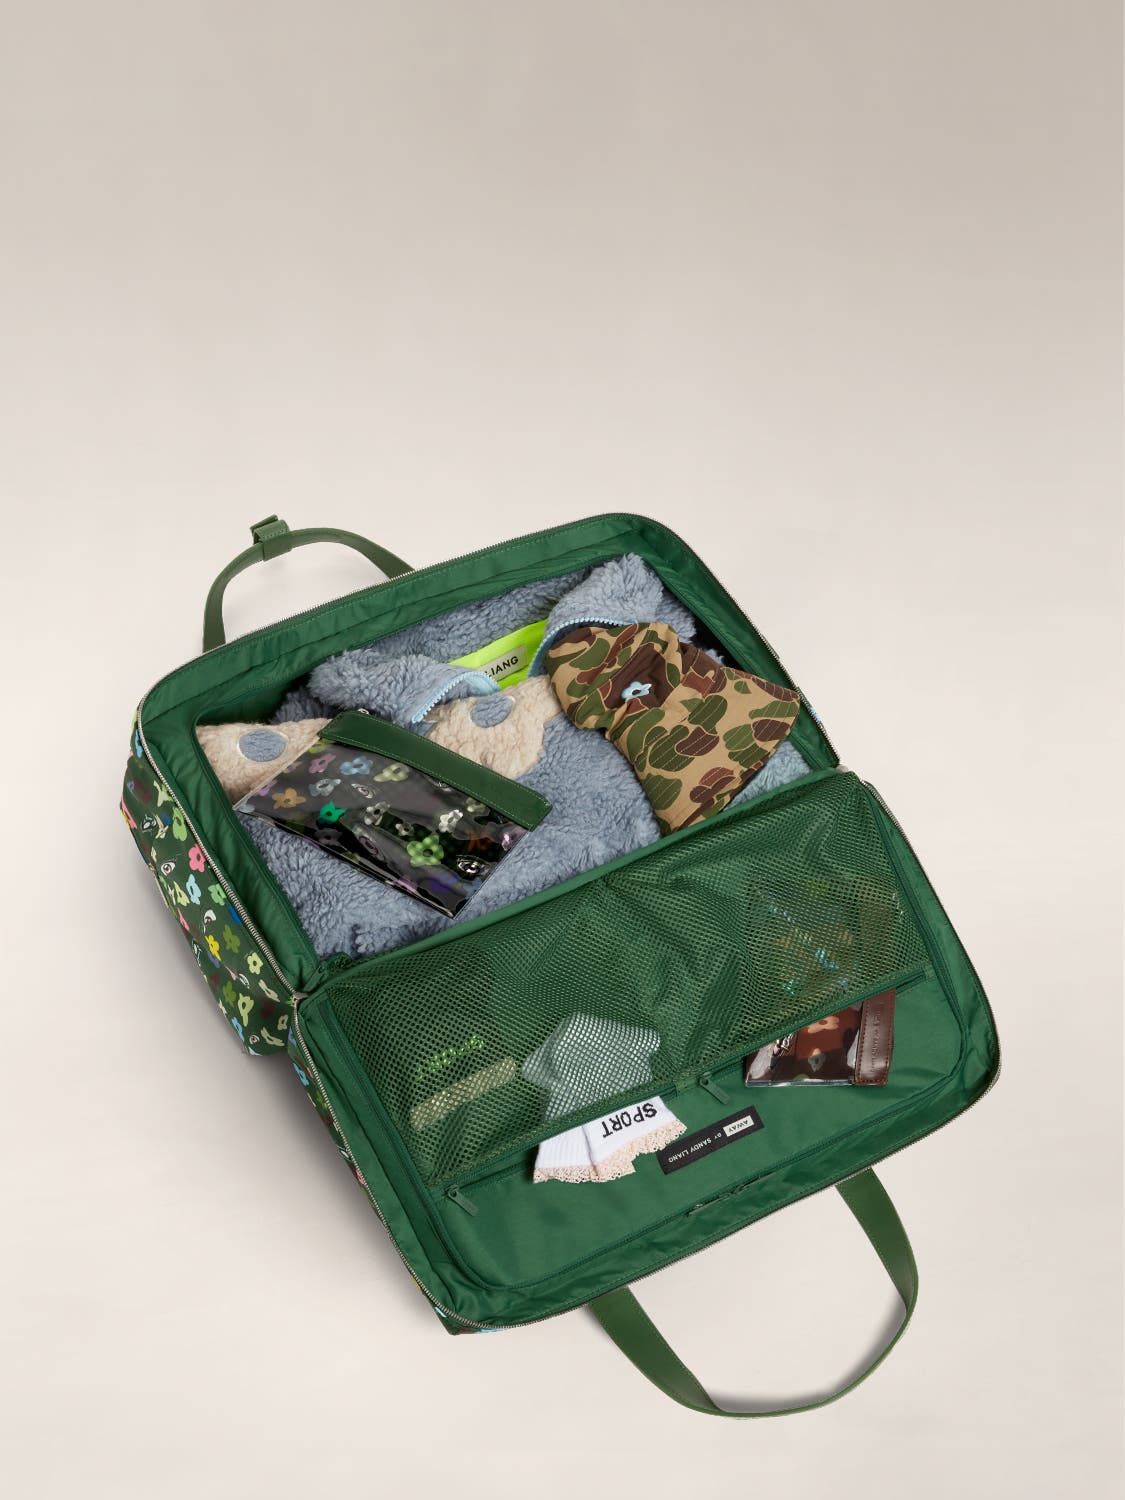 Open view of the Large Everywhere Bag by Sandy Liang with a green interior